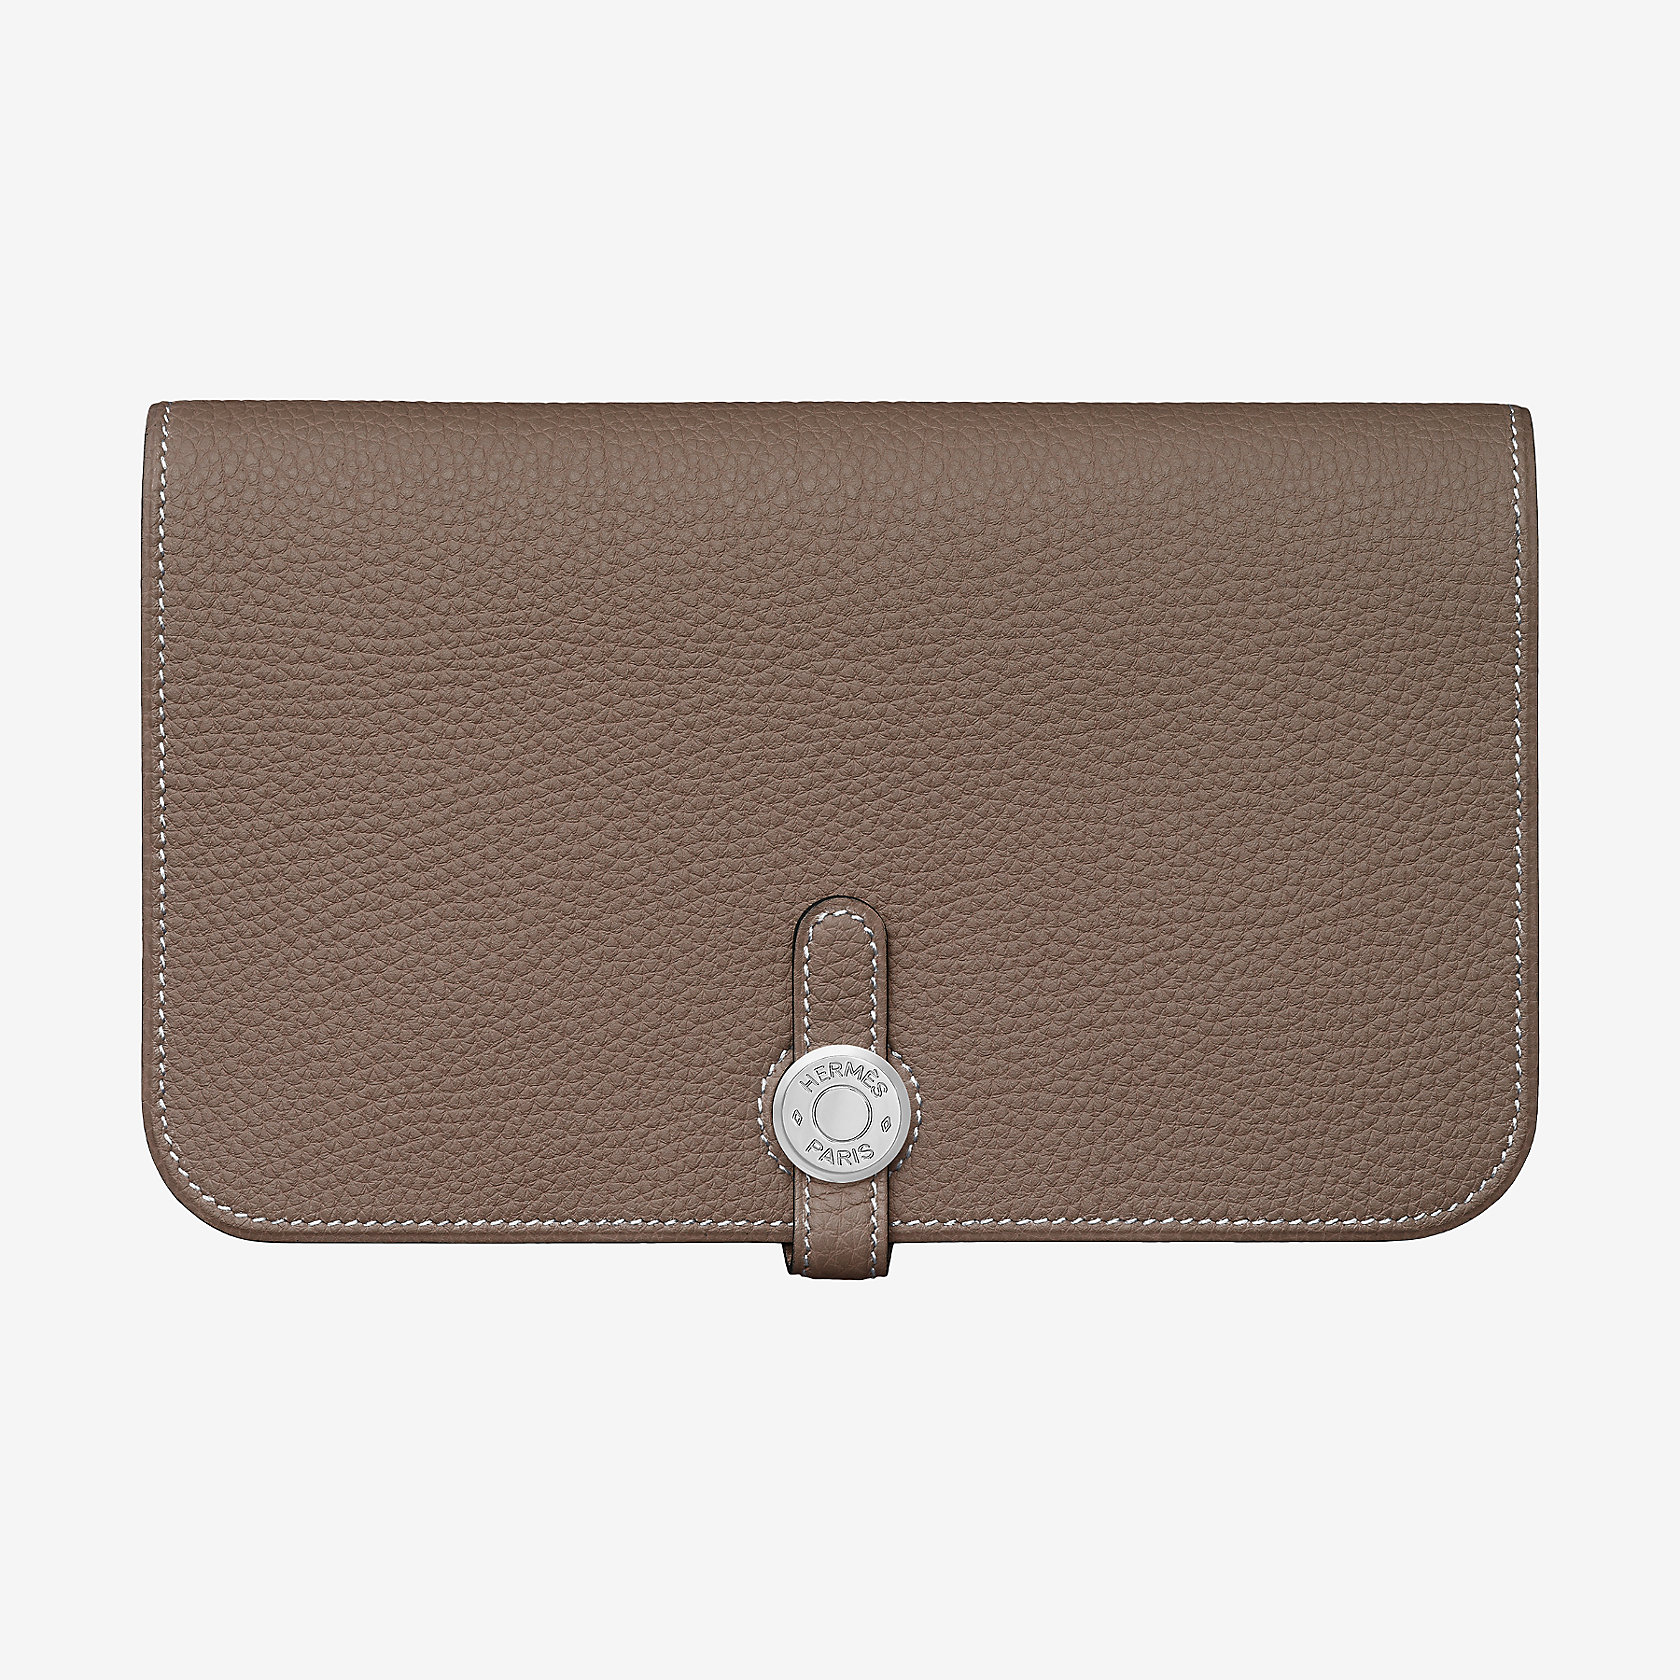 79923f49e682 Dogon Duo combined wallet